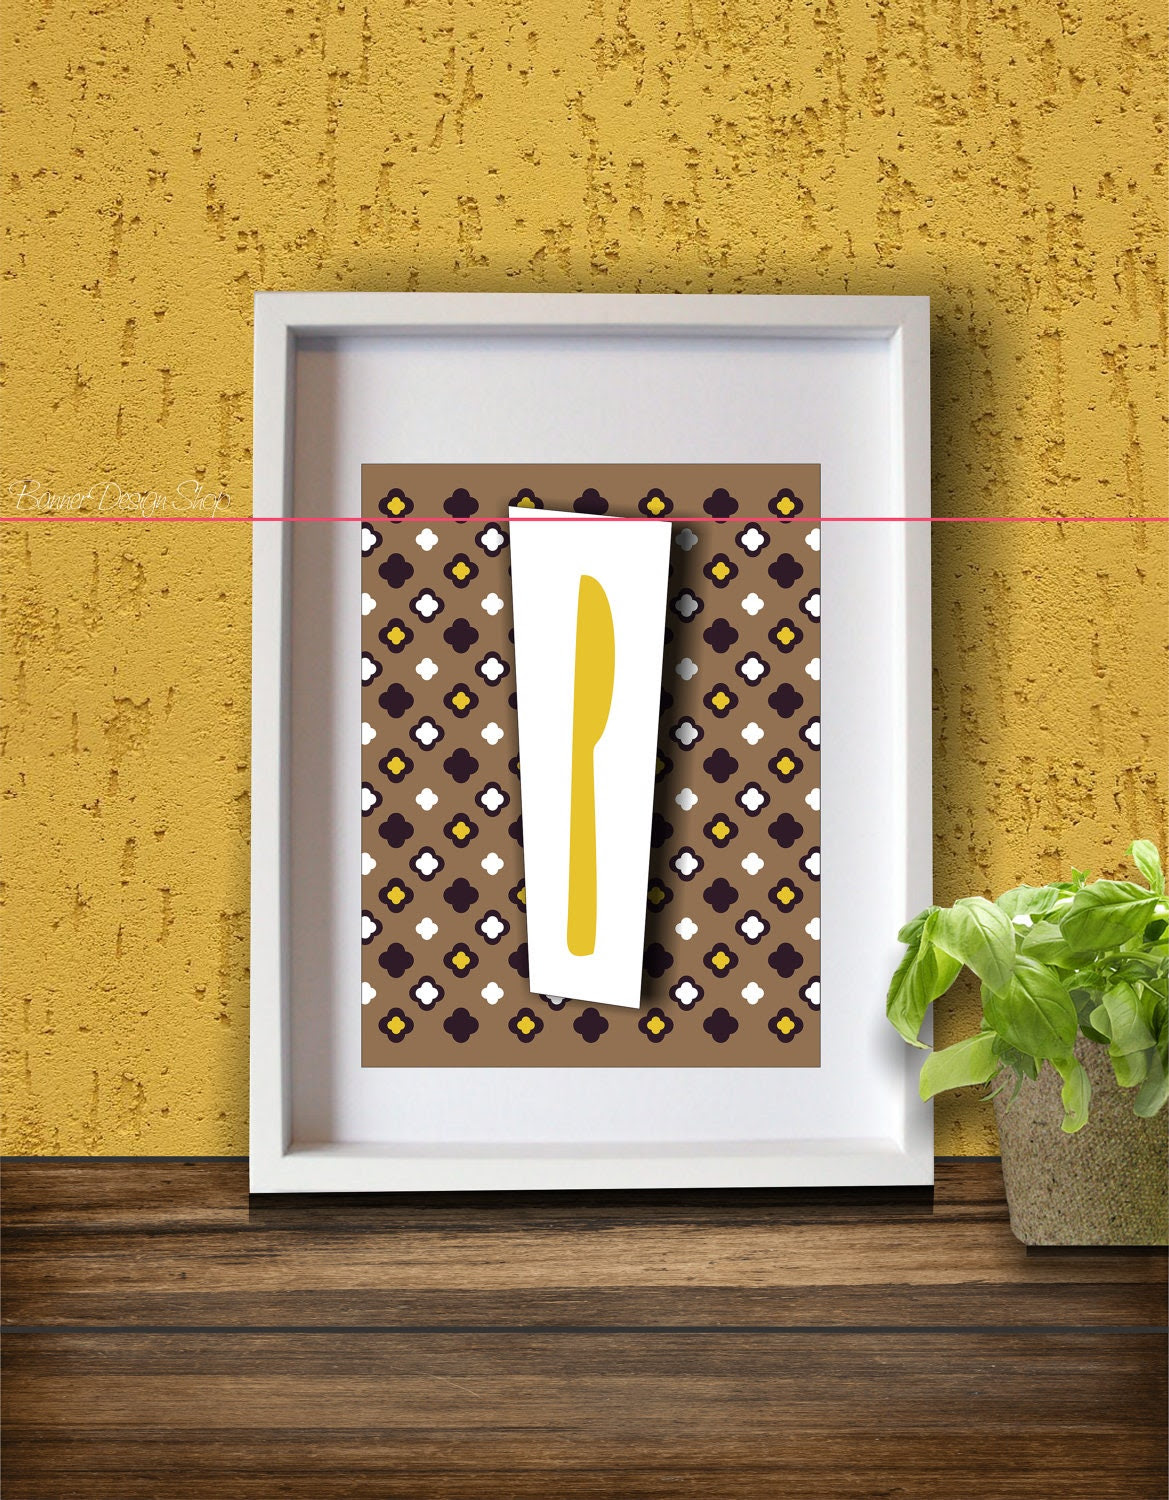 Popular items for kitchen living room on Etsy